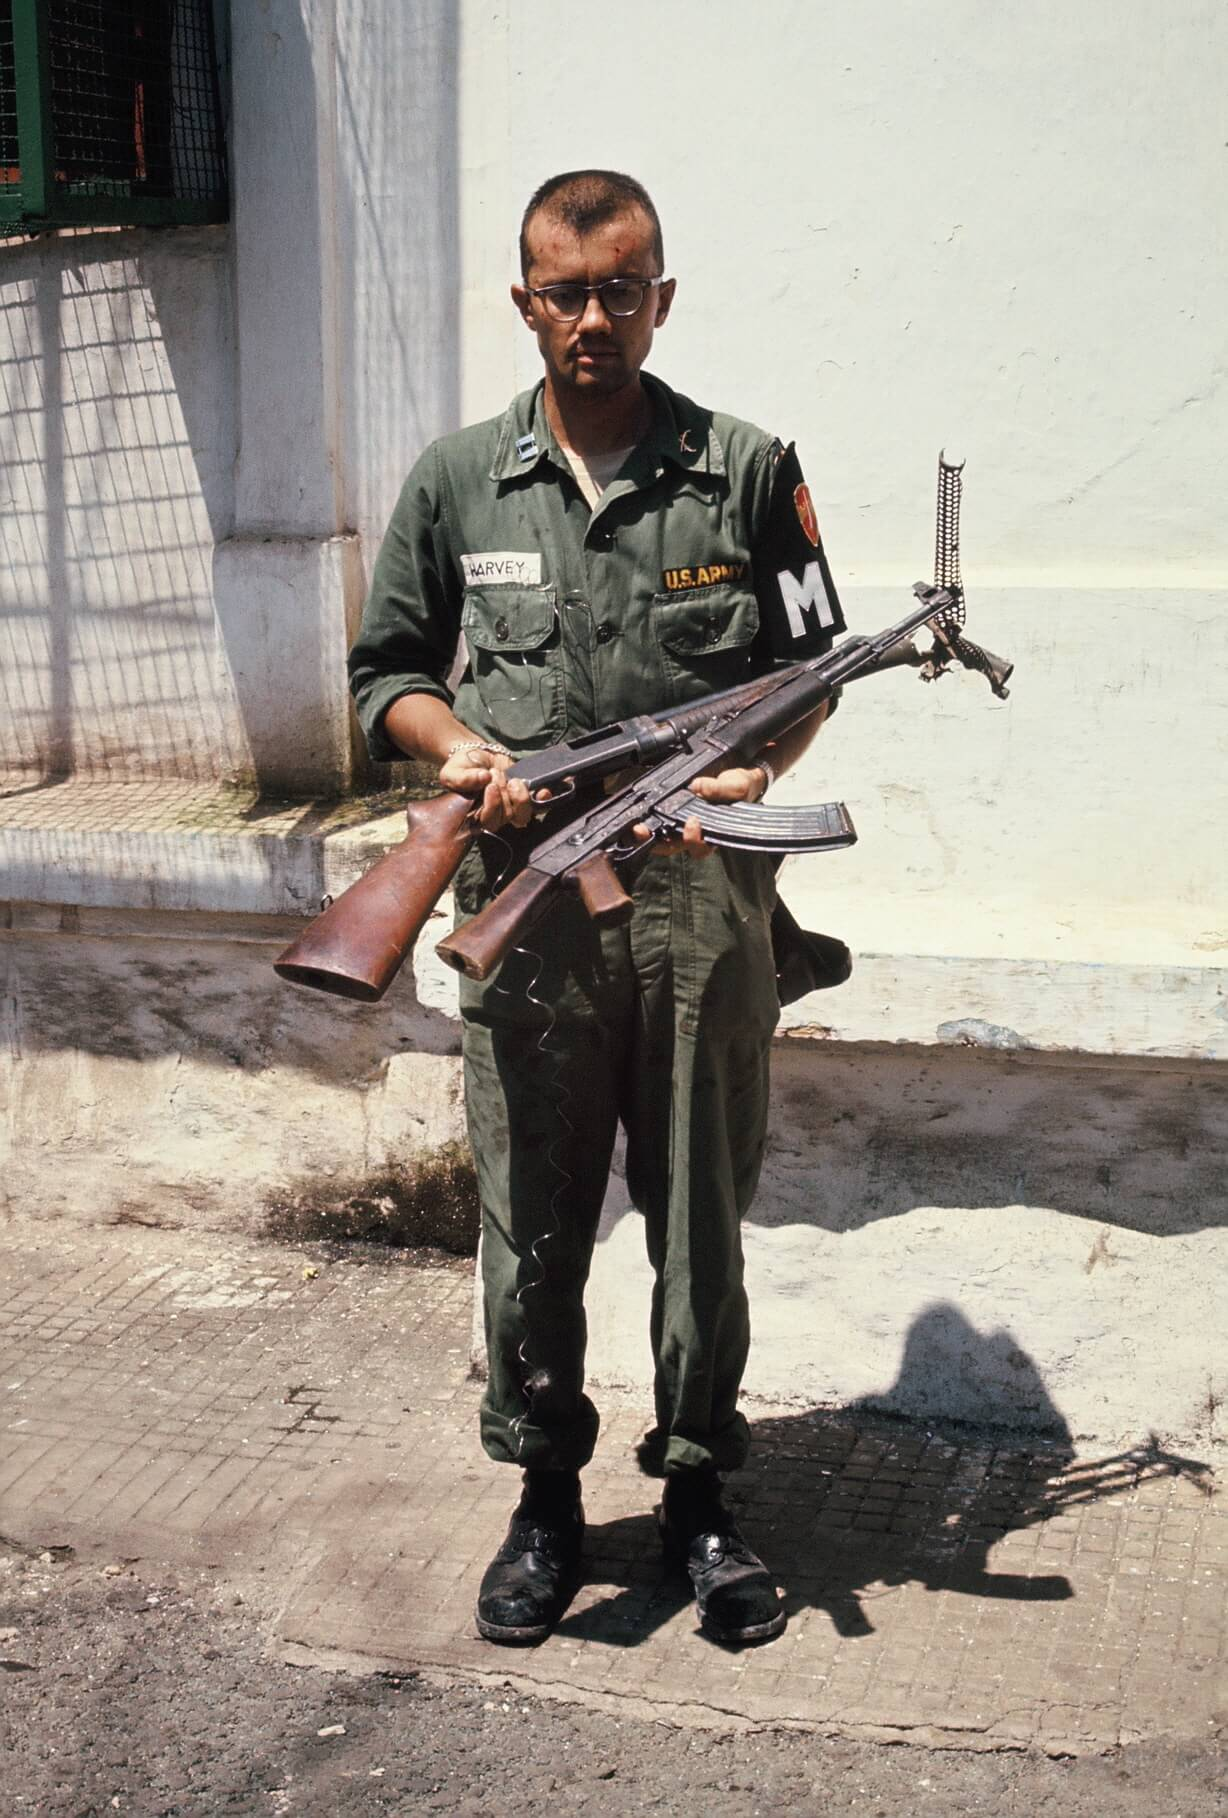 Military police officer holding two guns, standing out on the street.